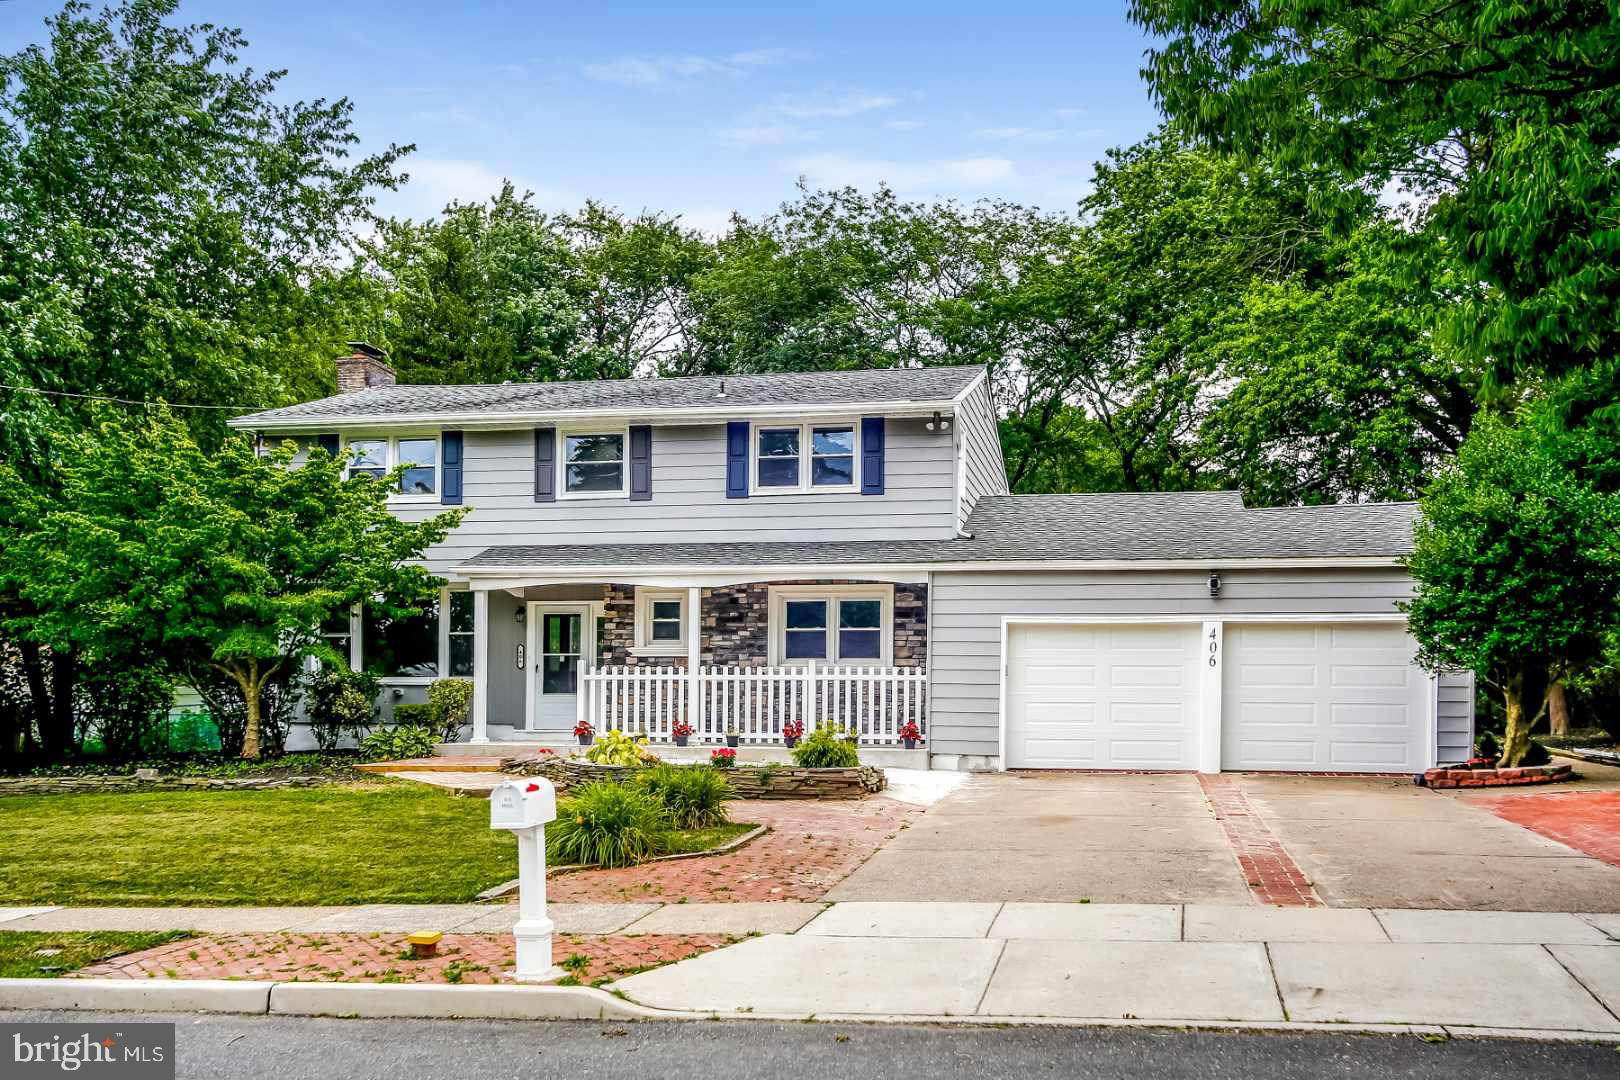 406 Garden State Drive, Cherry Hill, NJ 08002